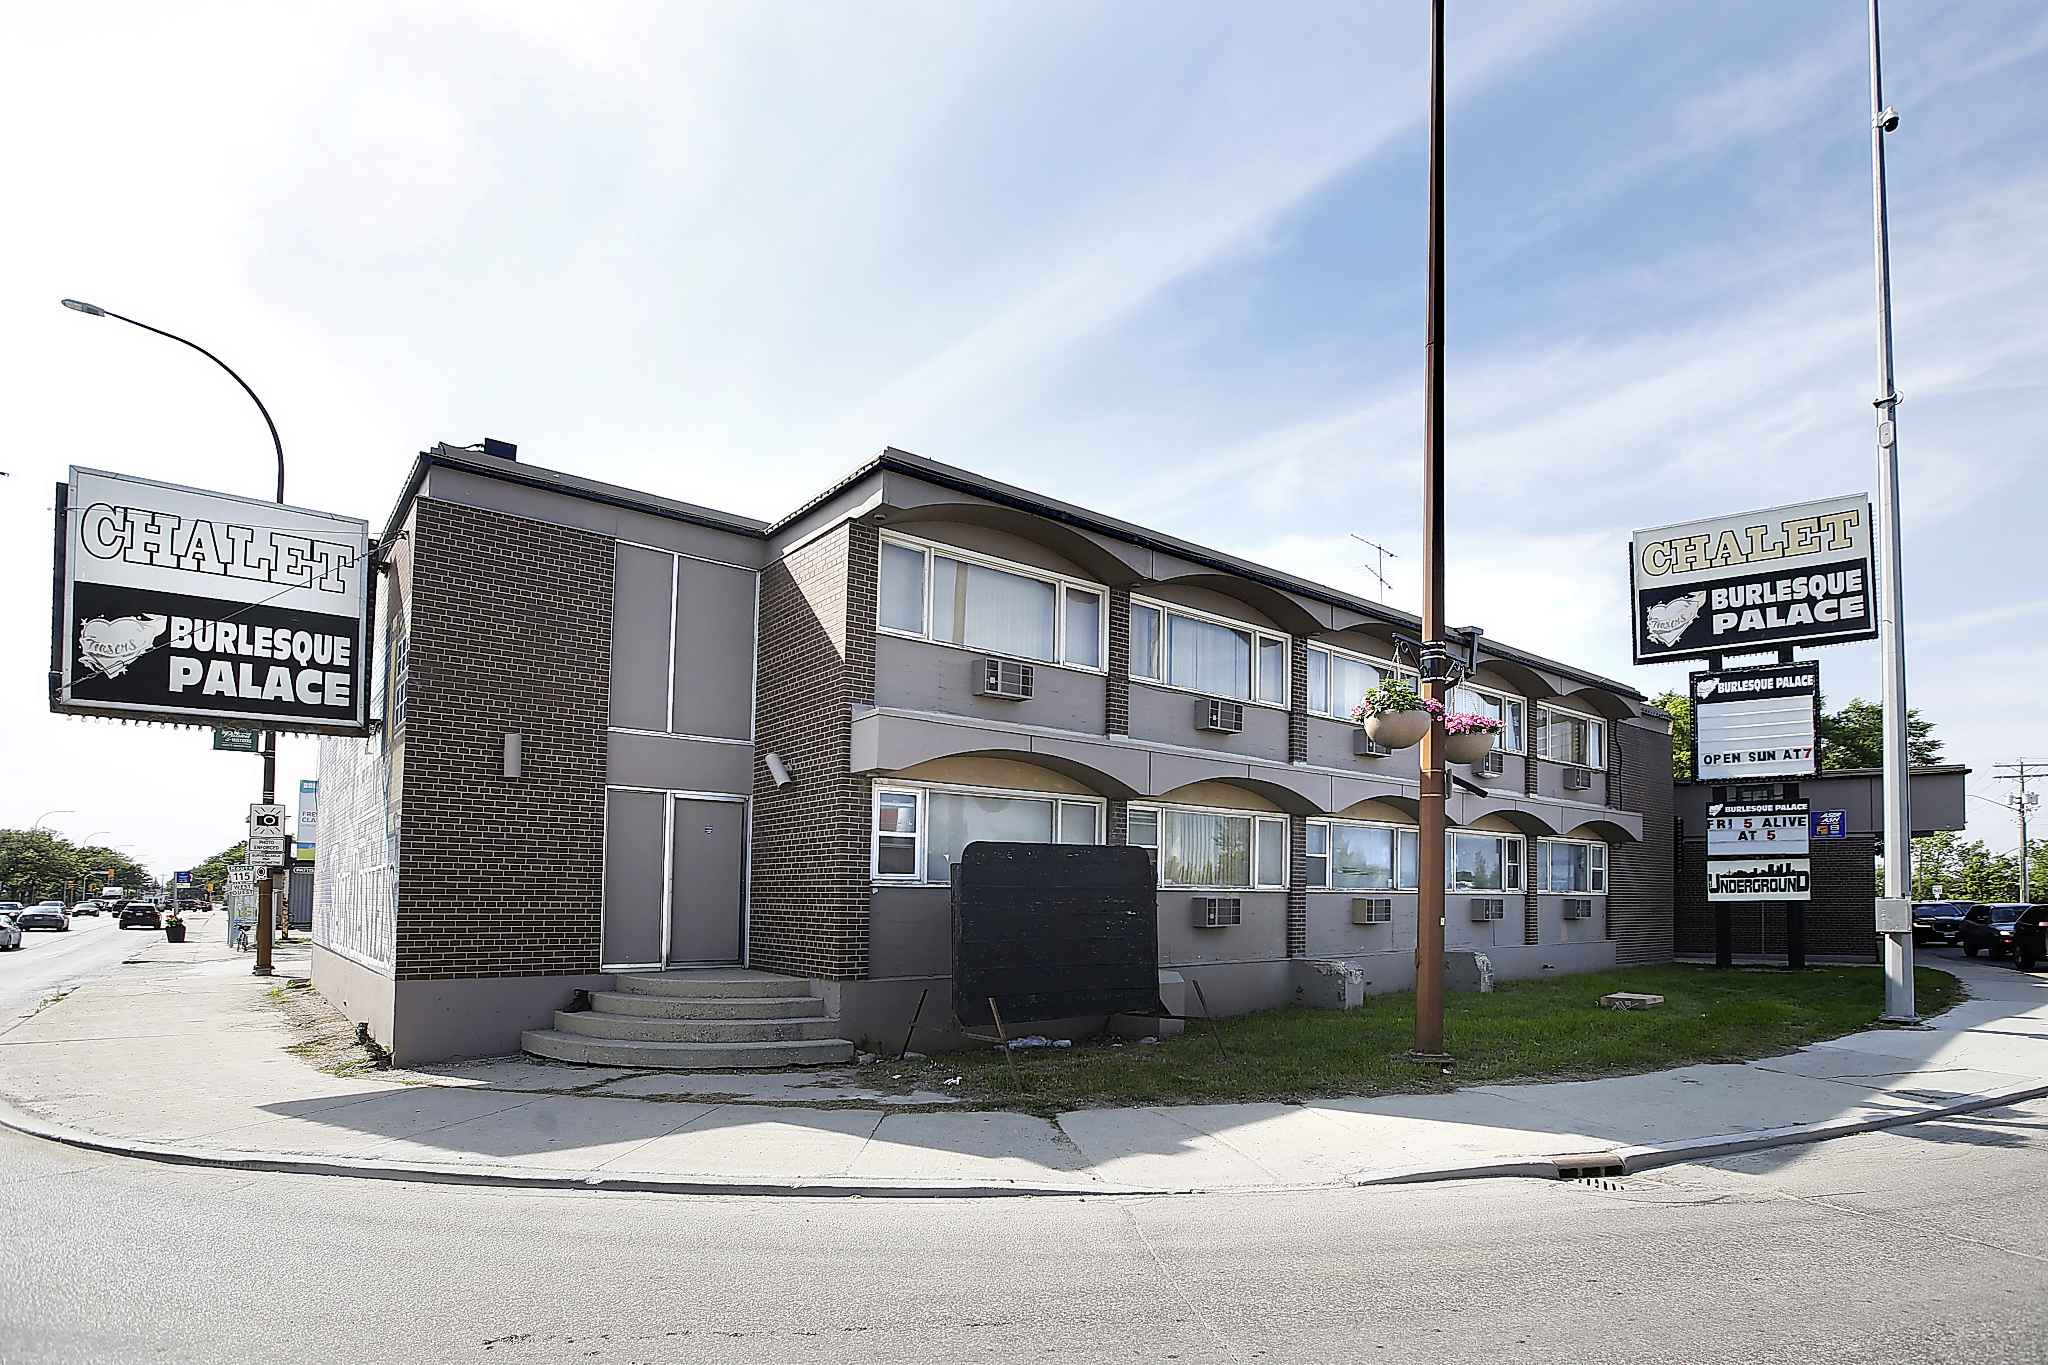 The 16,000 square-foot hotel at 611 Archibald St. sold for $1.3 million during a mortgage sale Tuesday morning at Kaye's Auctions. (John Woods / Winnipeg Free Press)